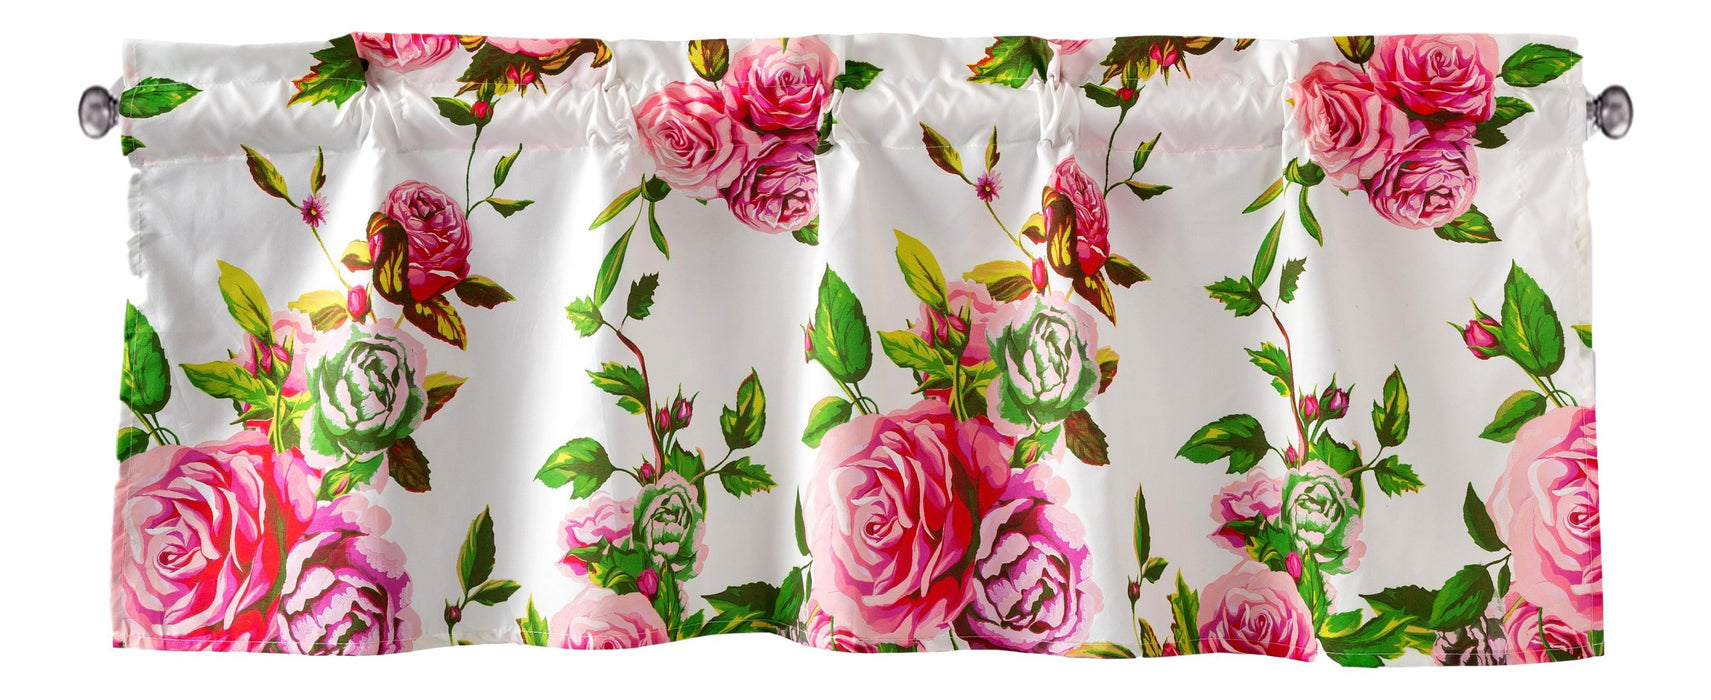 "DaDa Bedding Romantic Roses Pink Floral Window Curtain Valance - 18"" x 52"" (JHW-879)"